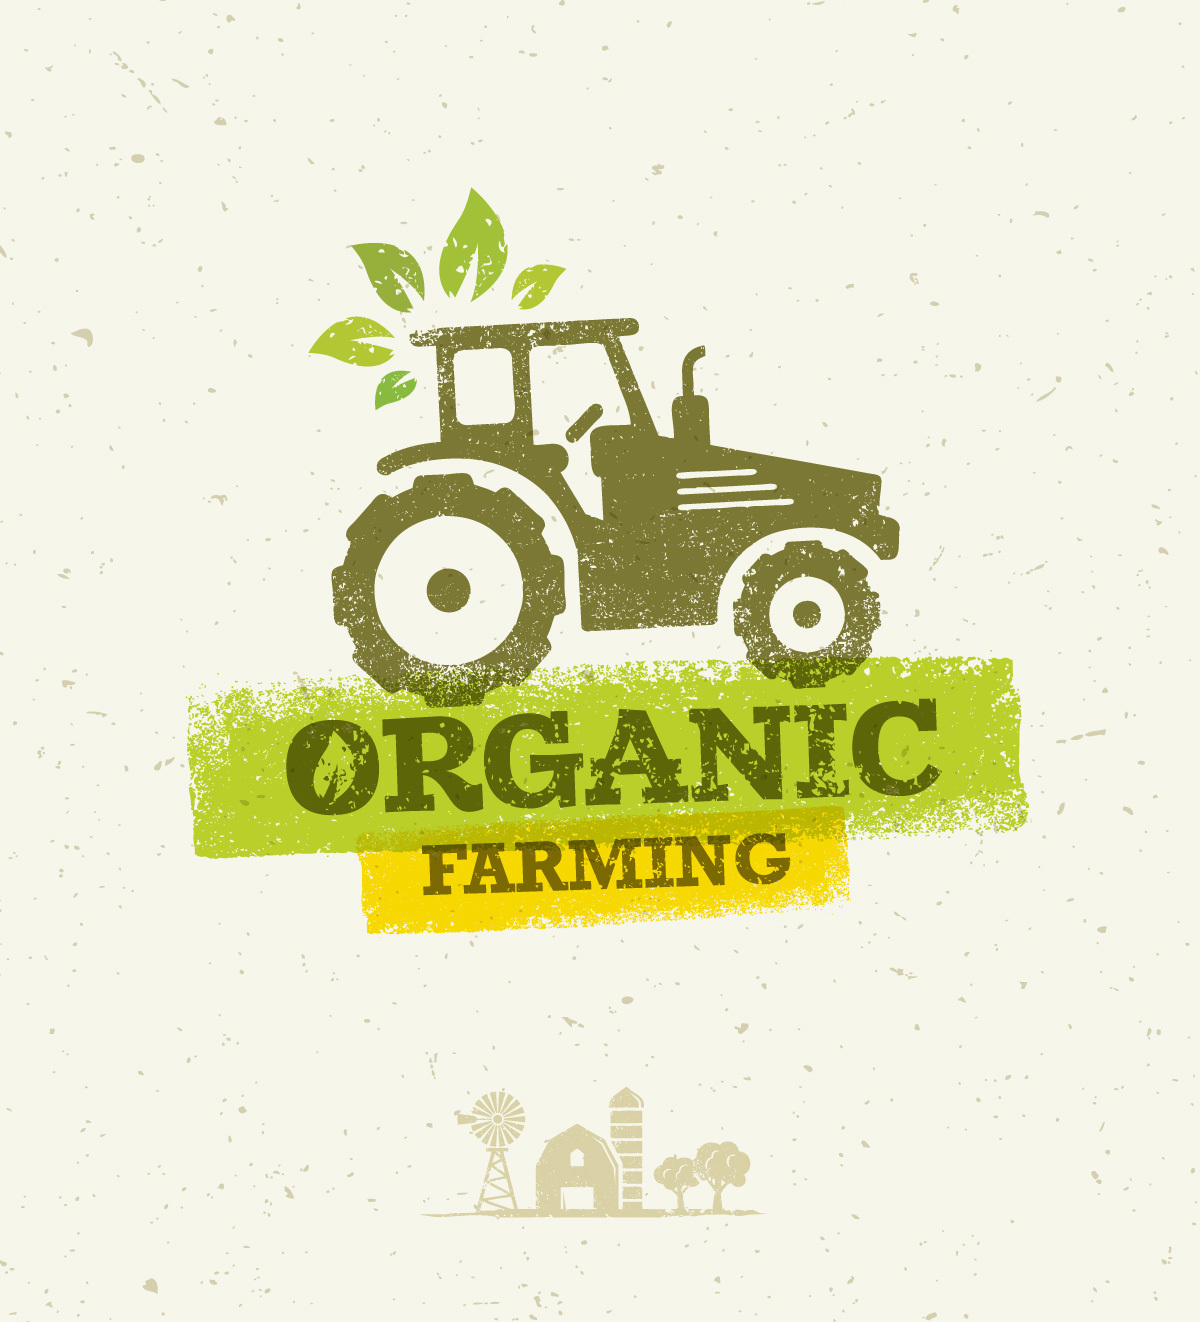 Organic Production Principles - August provided by NOTS.ie